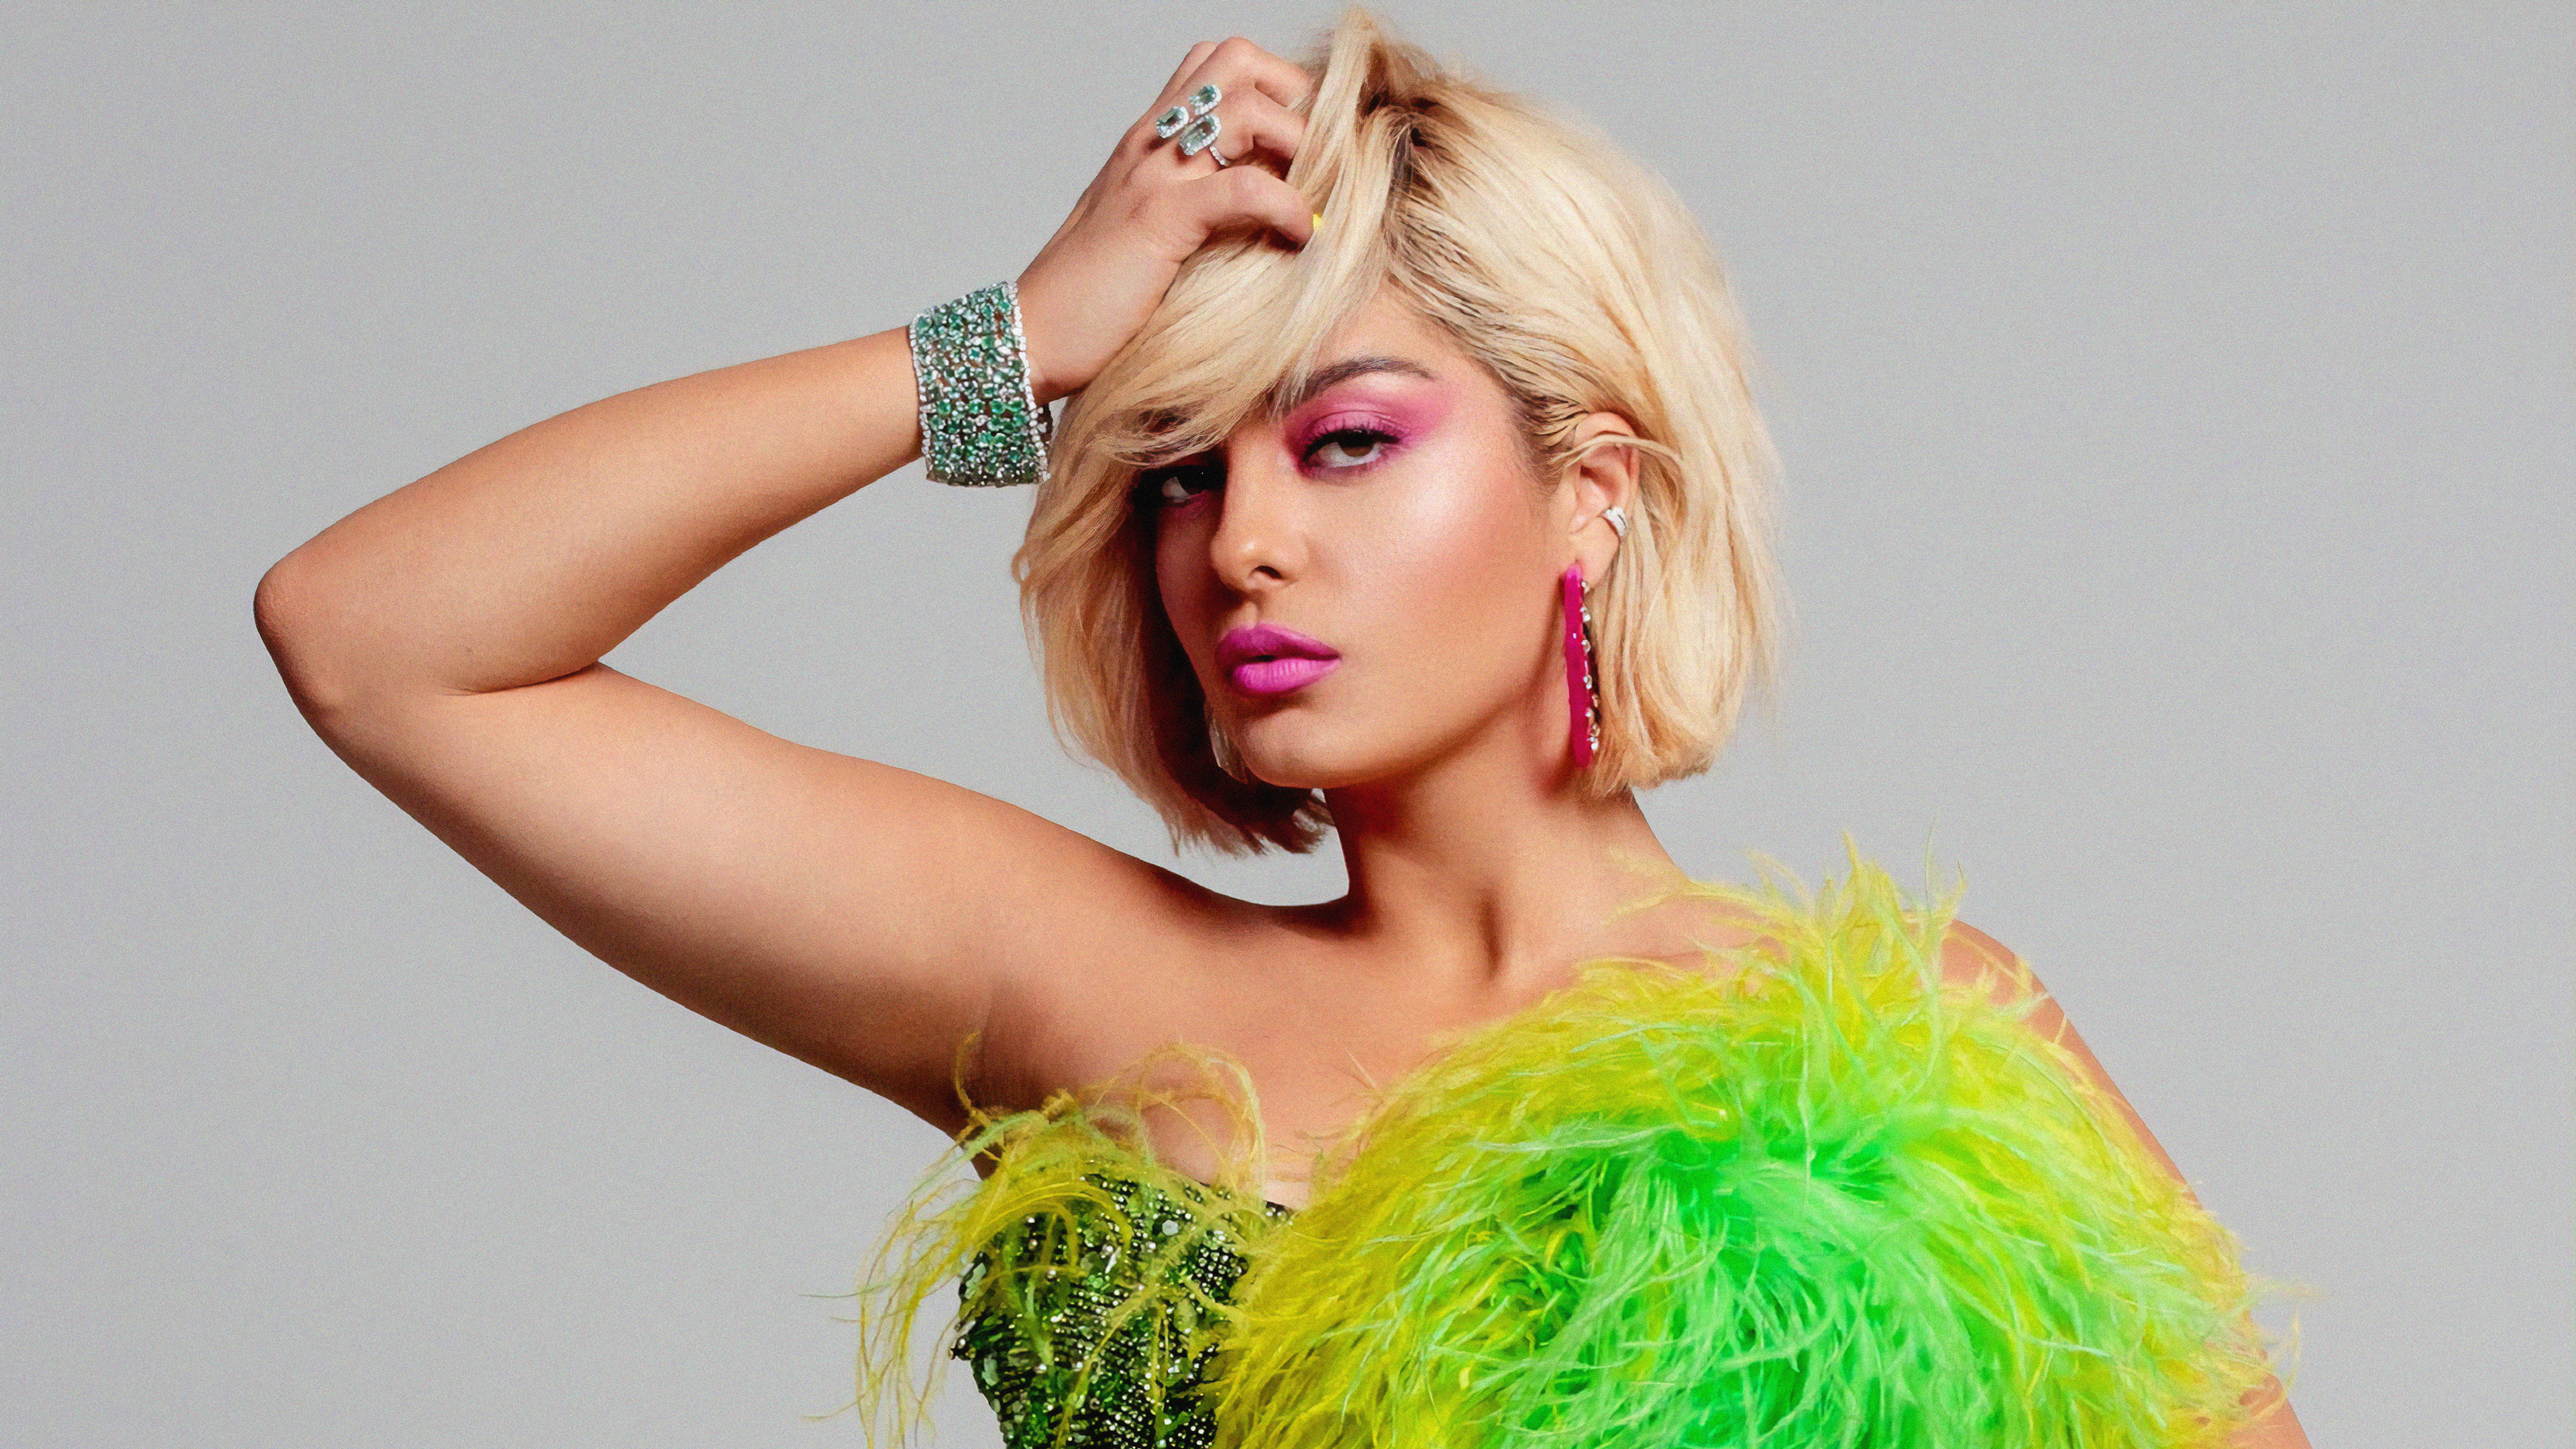 bebe rexha 2019 1563222409 - Bebe Rexha 2019 - music wallpapers, hd-wallpapers, girls wallpapers, celebrities wallpapers, bebe rexha wallpapers, 4k-wallpapers